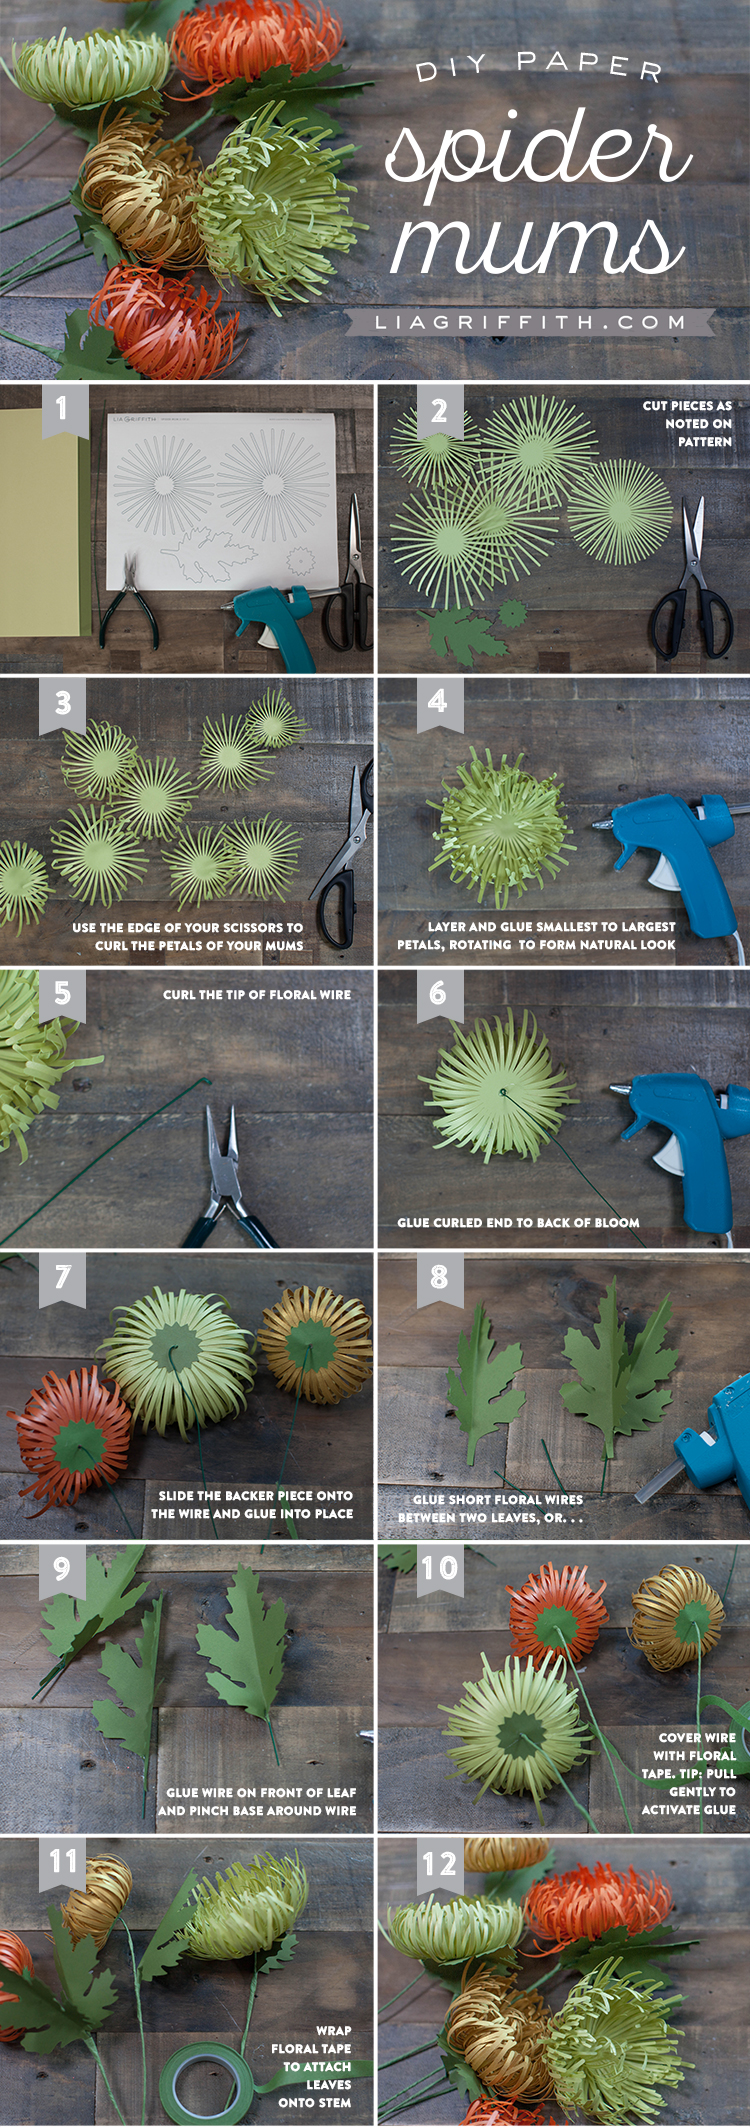 Paper Spider Mums for Fall - Lia Griffith